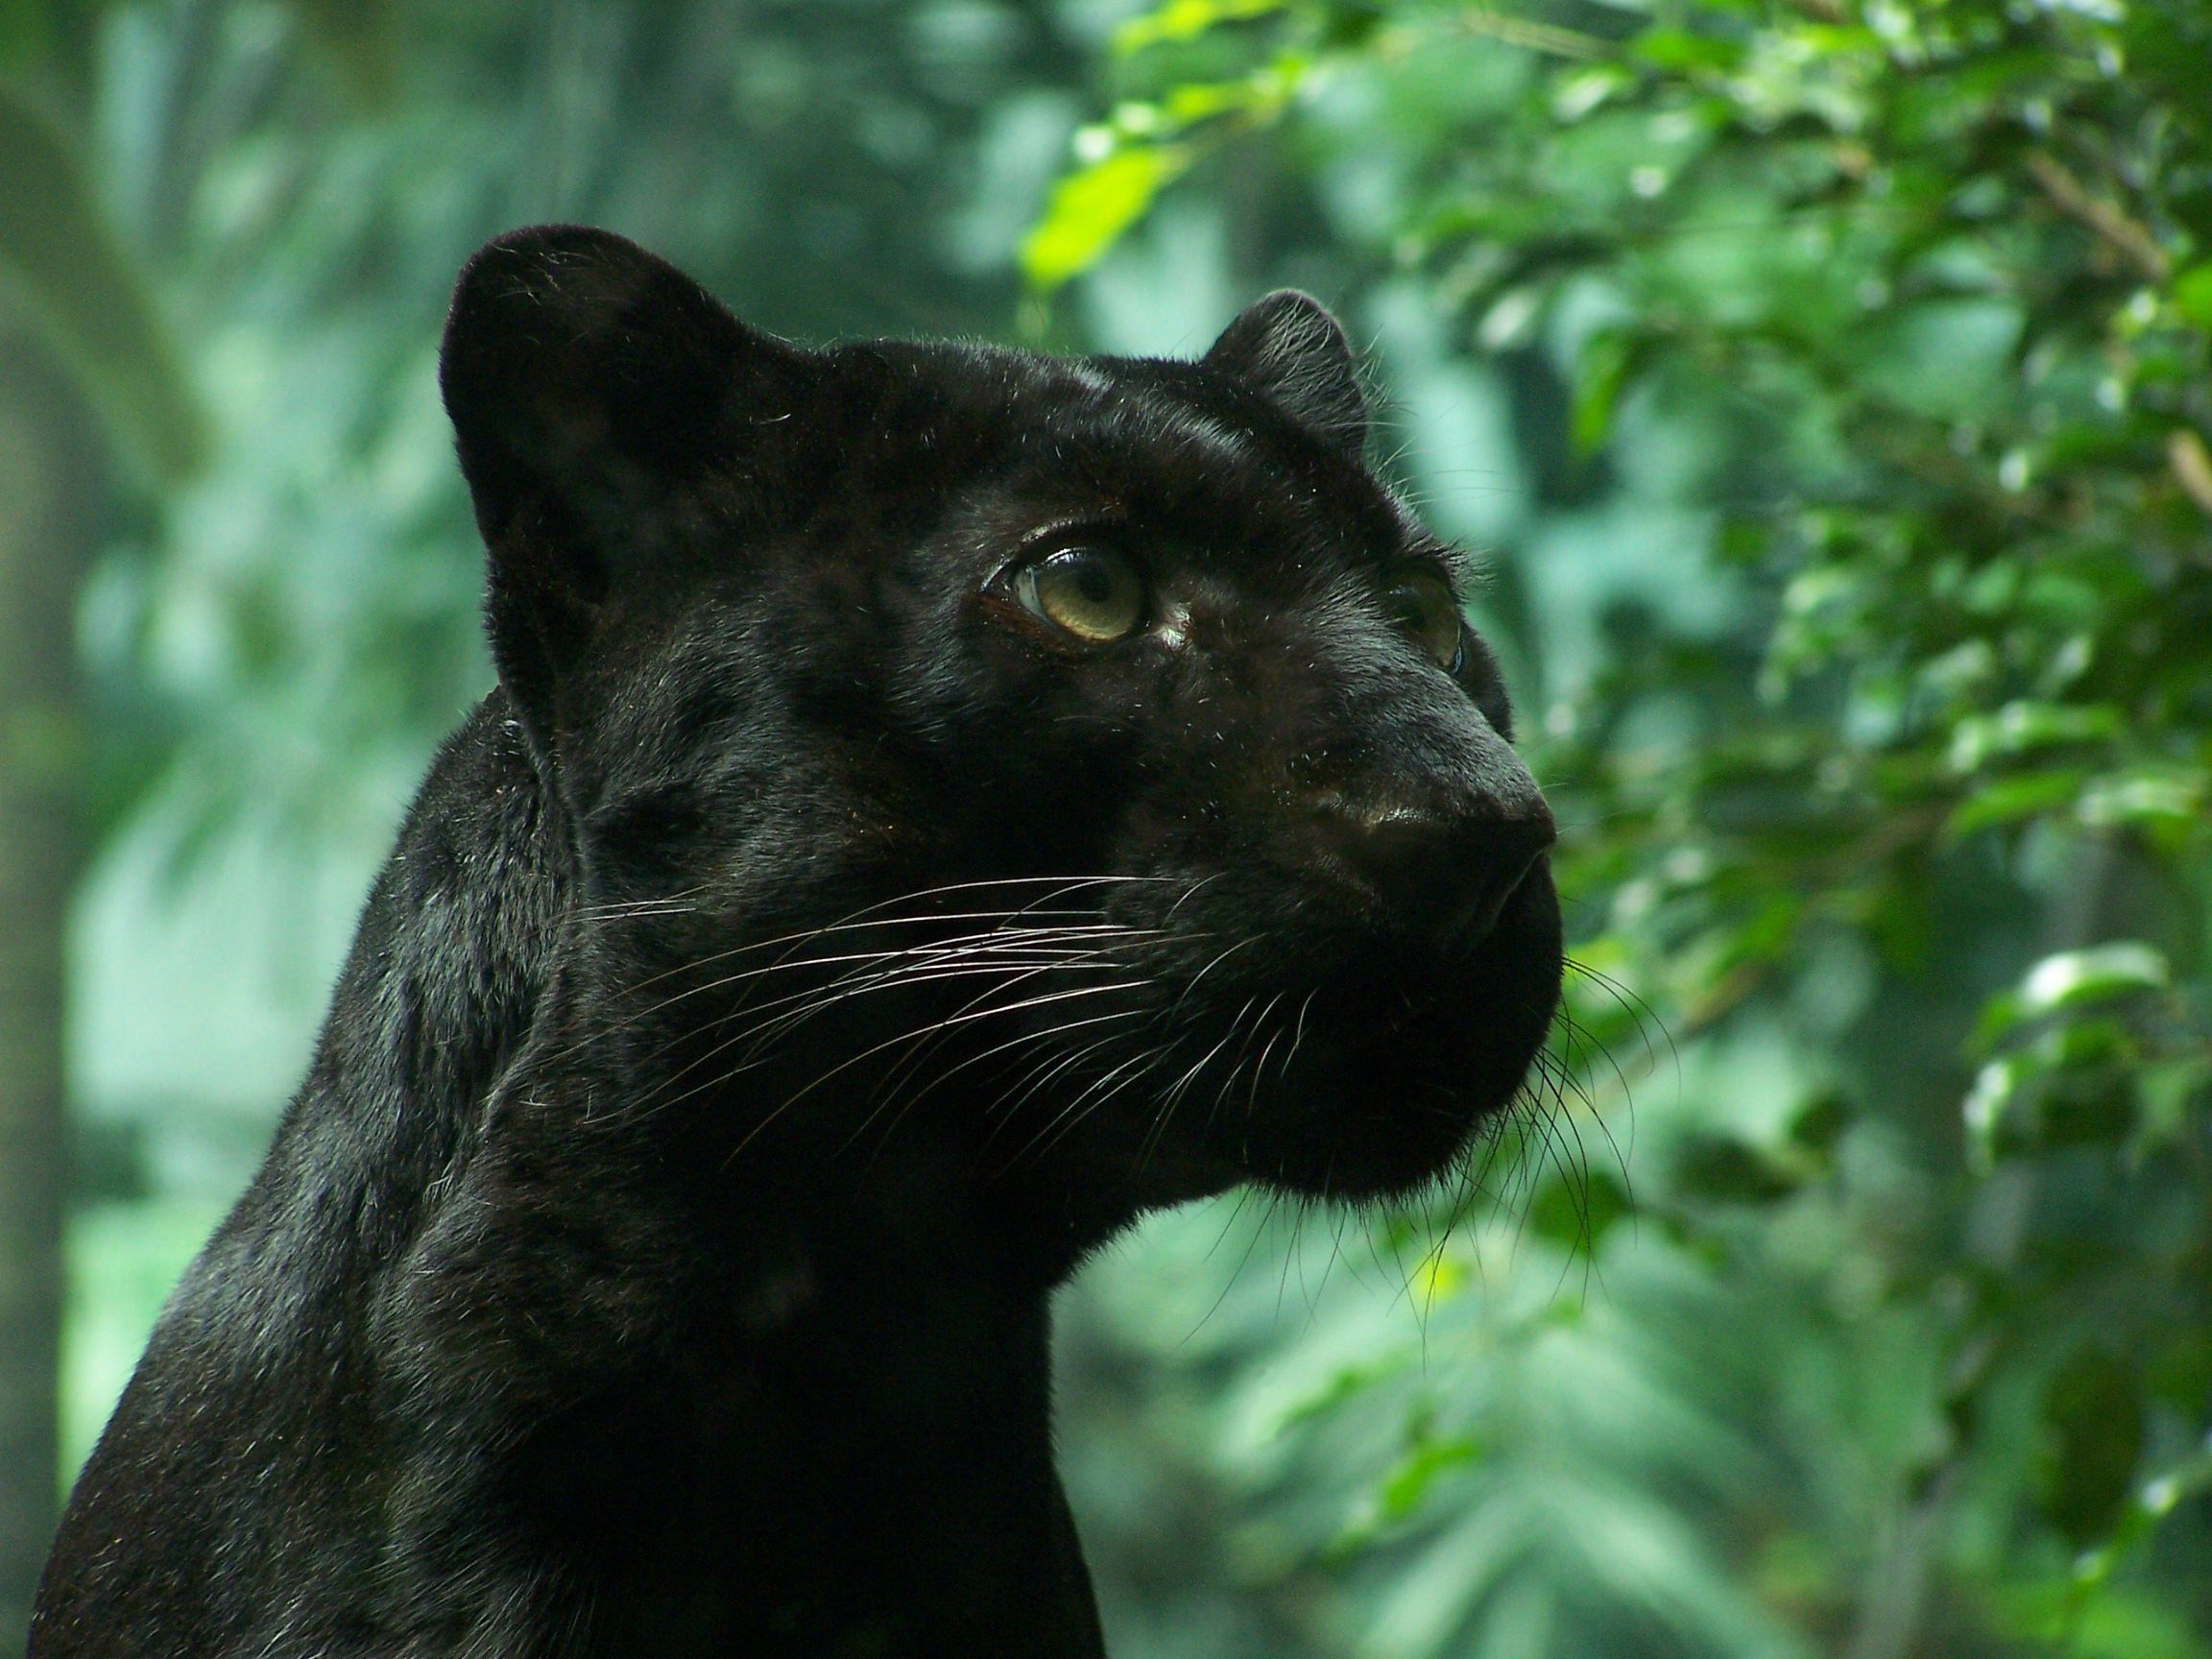 Black Panther Wallpaper *Highly Endangered* So amazingly